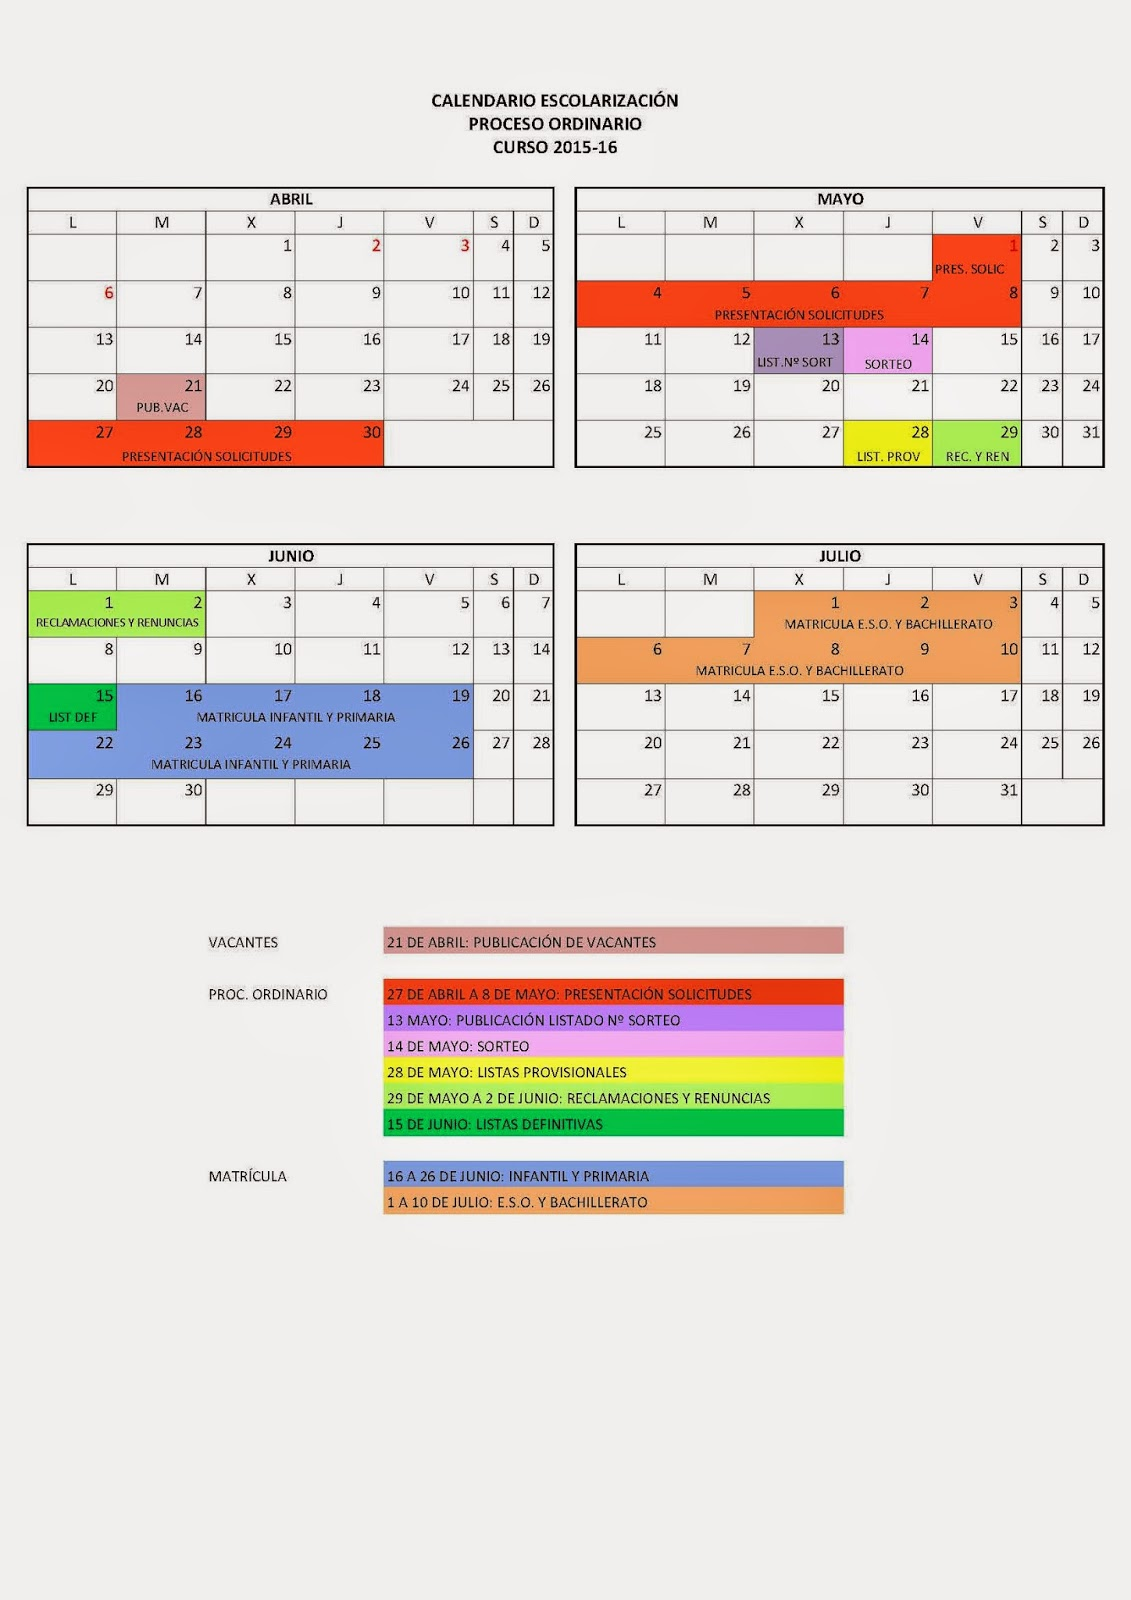 https://www.dropbox.com/s/rq2i8pd5yeowv8t/Calendario_ordinario_15-16.pdf?dl=0